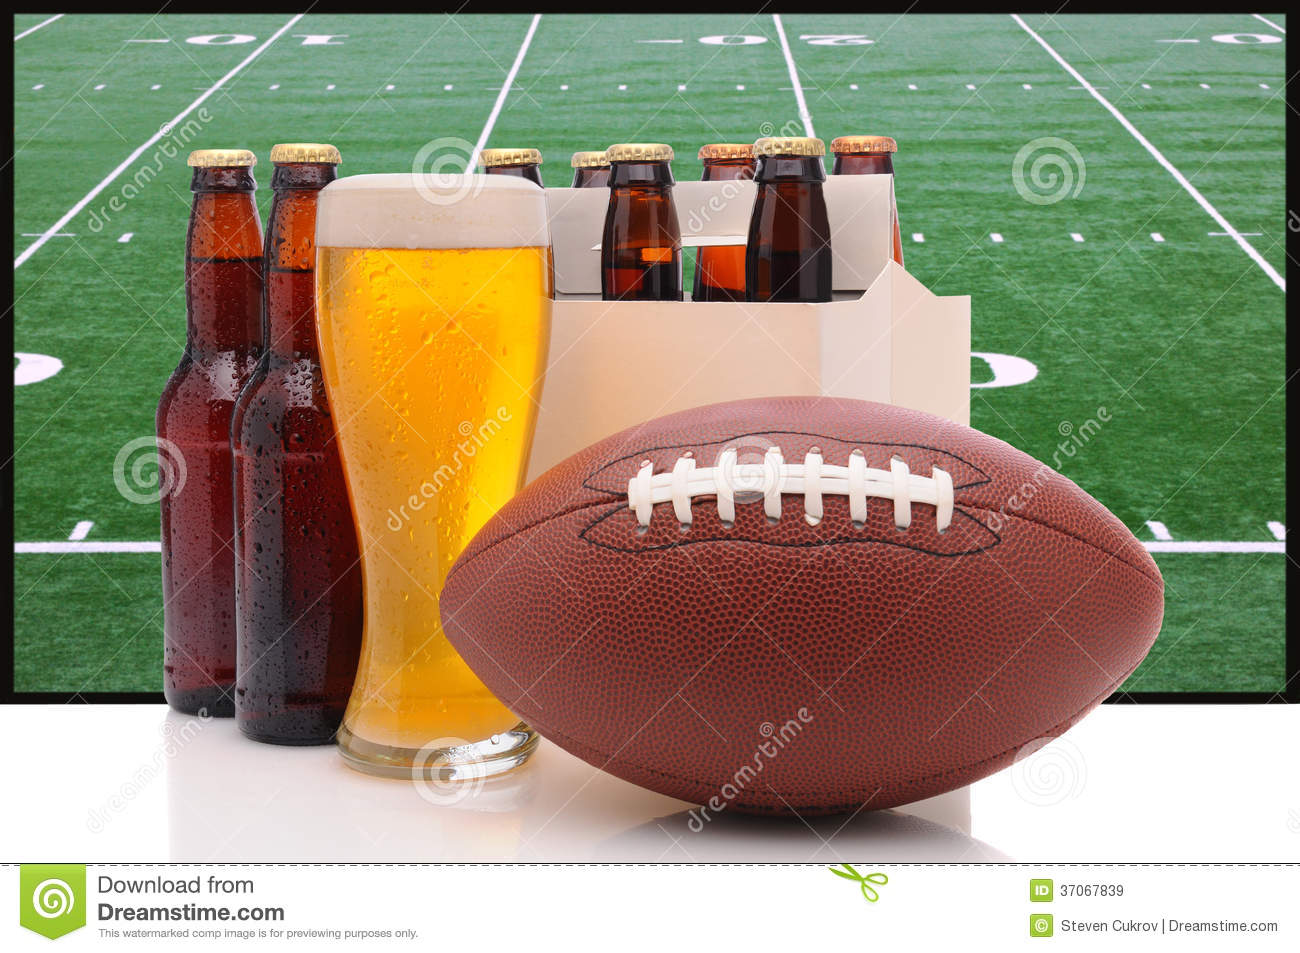 Beer Bottles And American Football Royalty Free Stock